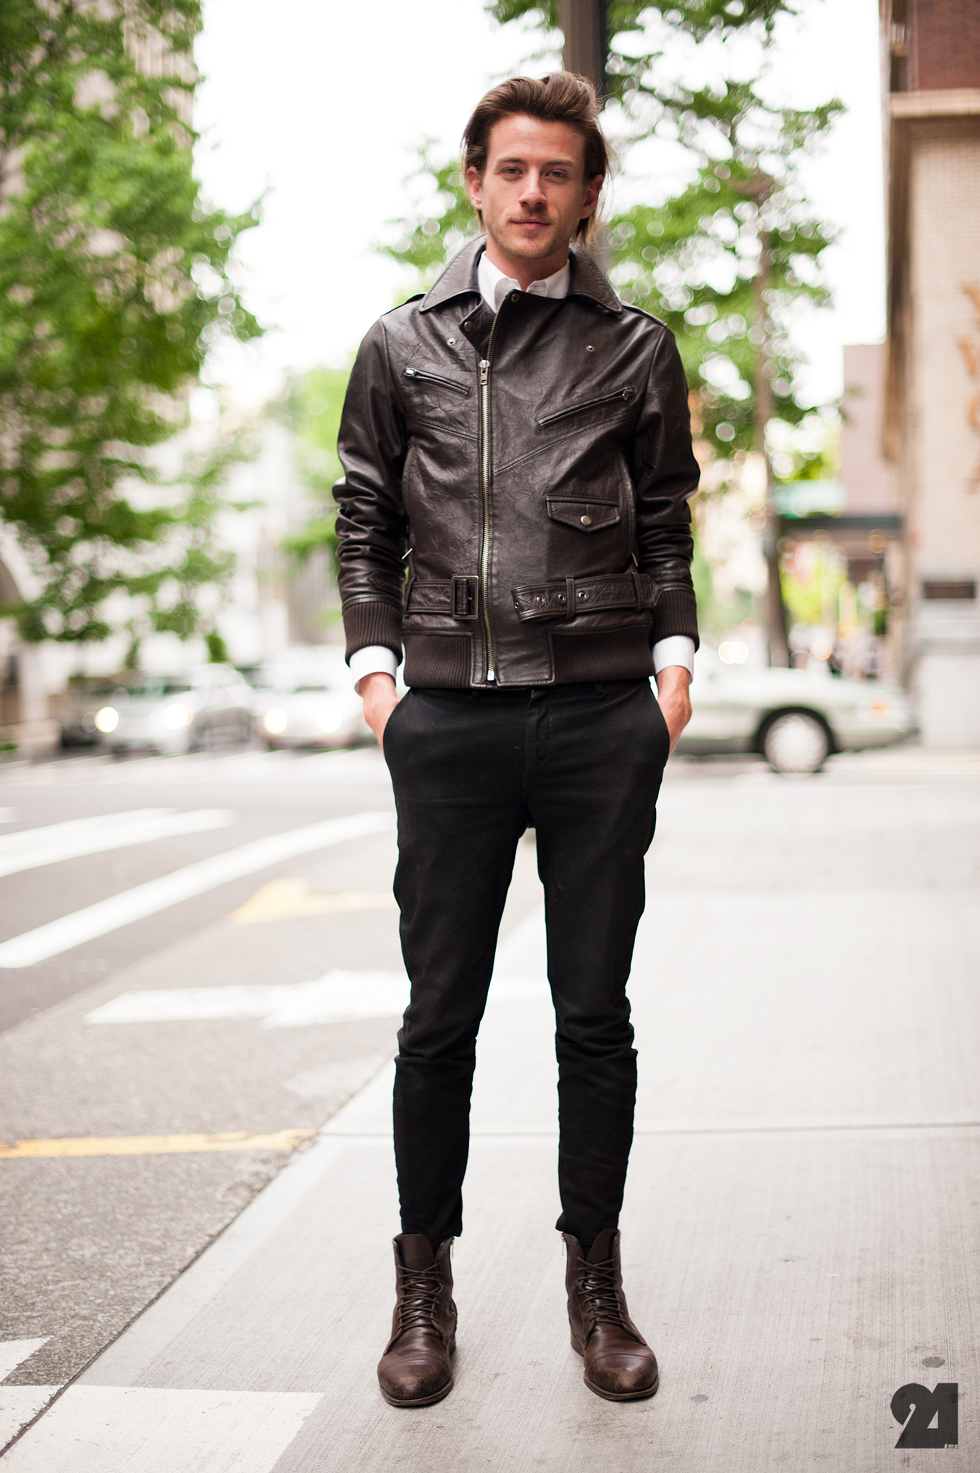 131-Le-21eme-Arrondissement-Adam-Katz-Sinding-Chris-Cushingham-Student-Model-Seattle-Street-Fashion-Blog.jpg